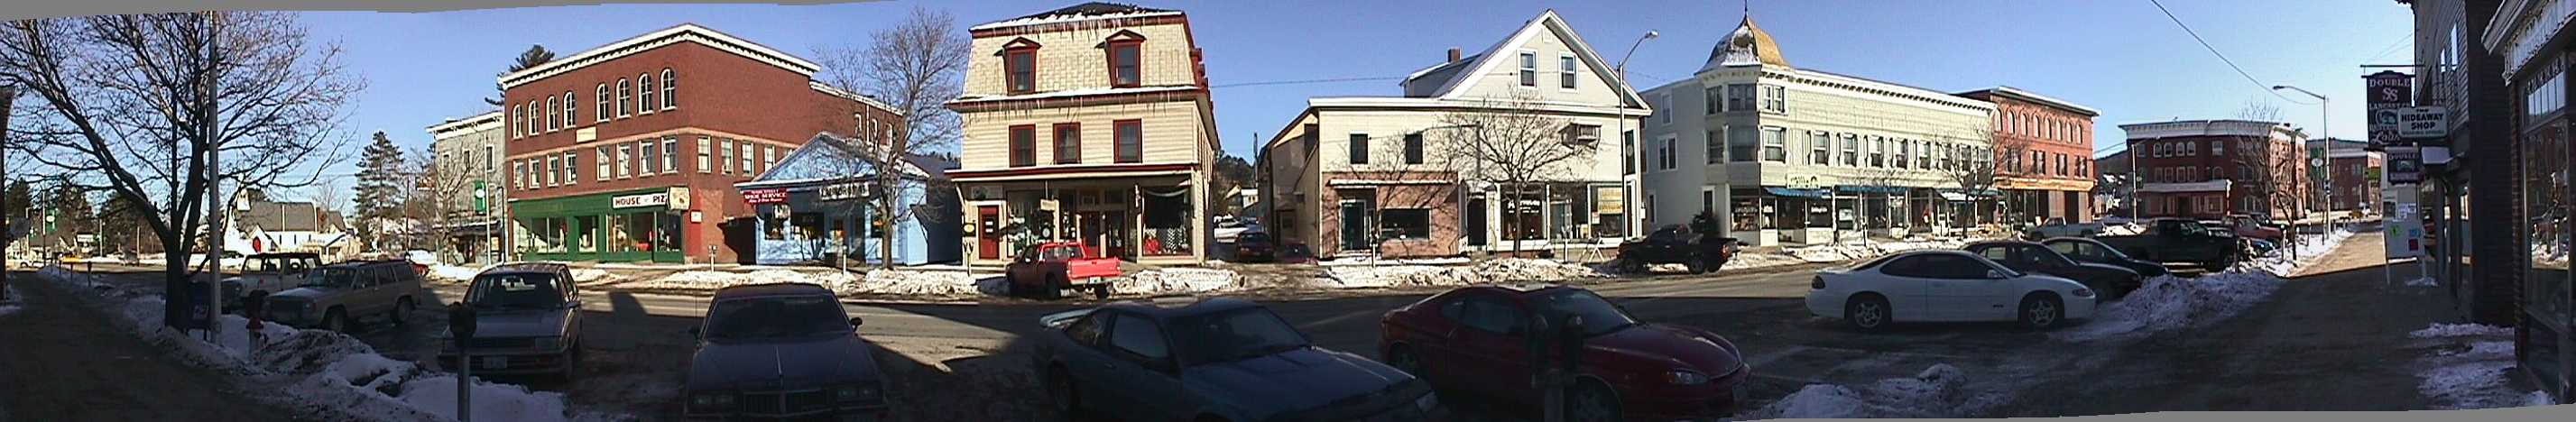 Panorama of Lancaster, NH by Rialto Theater.